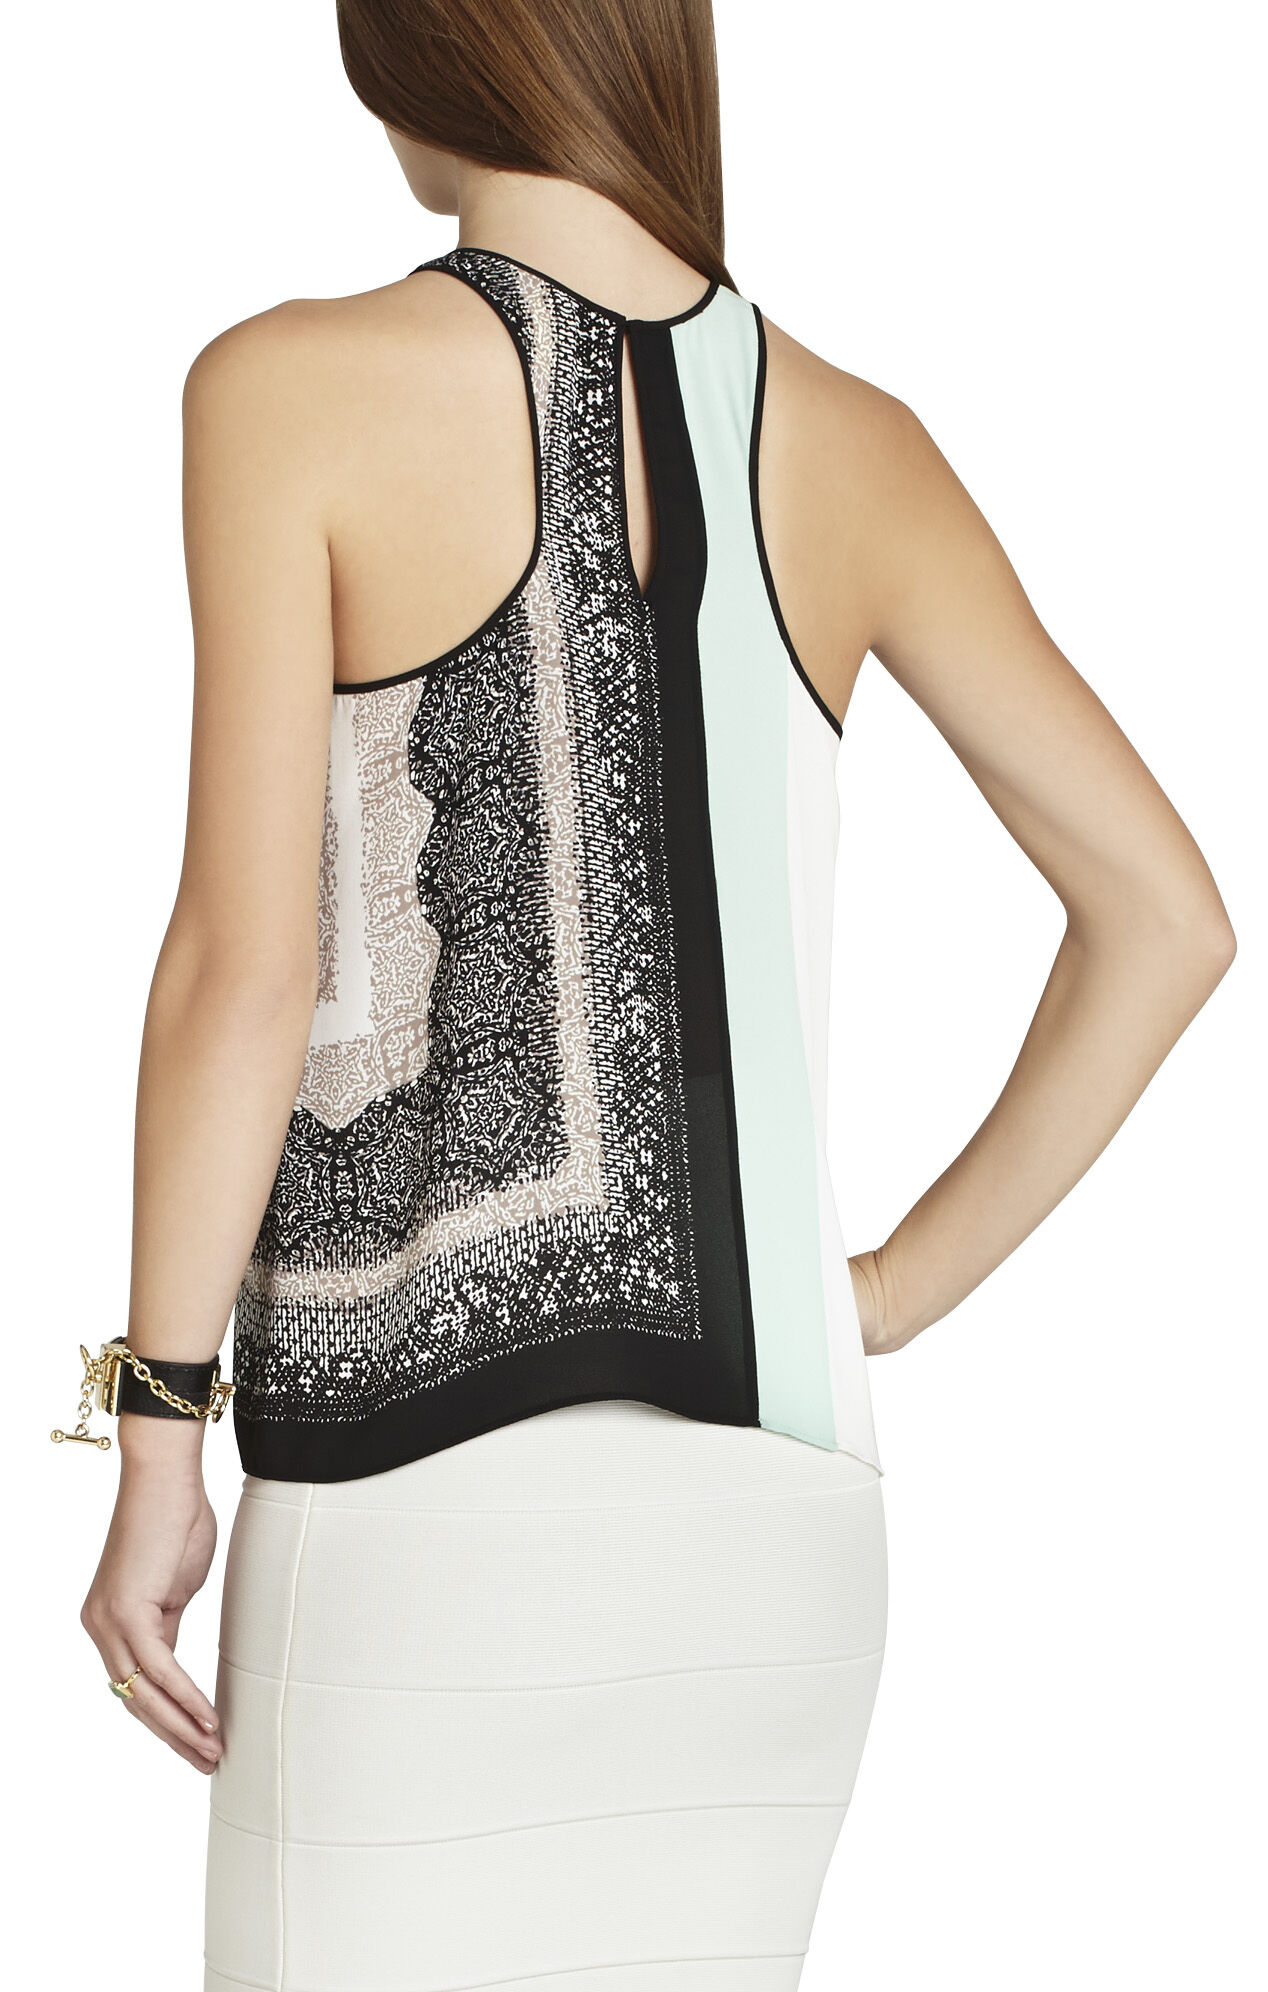 Eleeza Print-Blocked Sleeveless Top